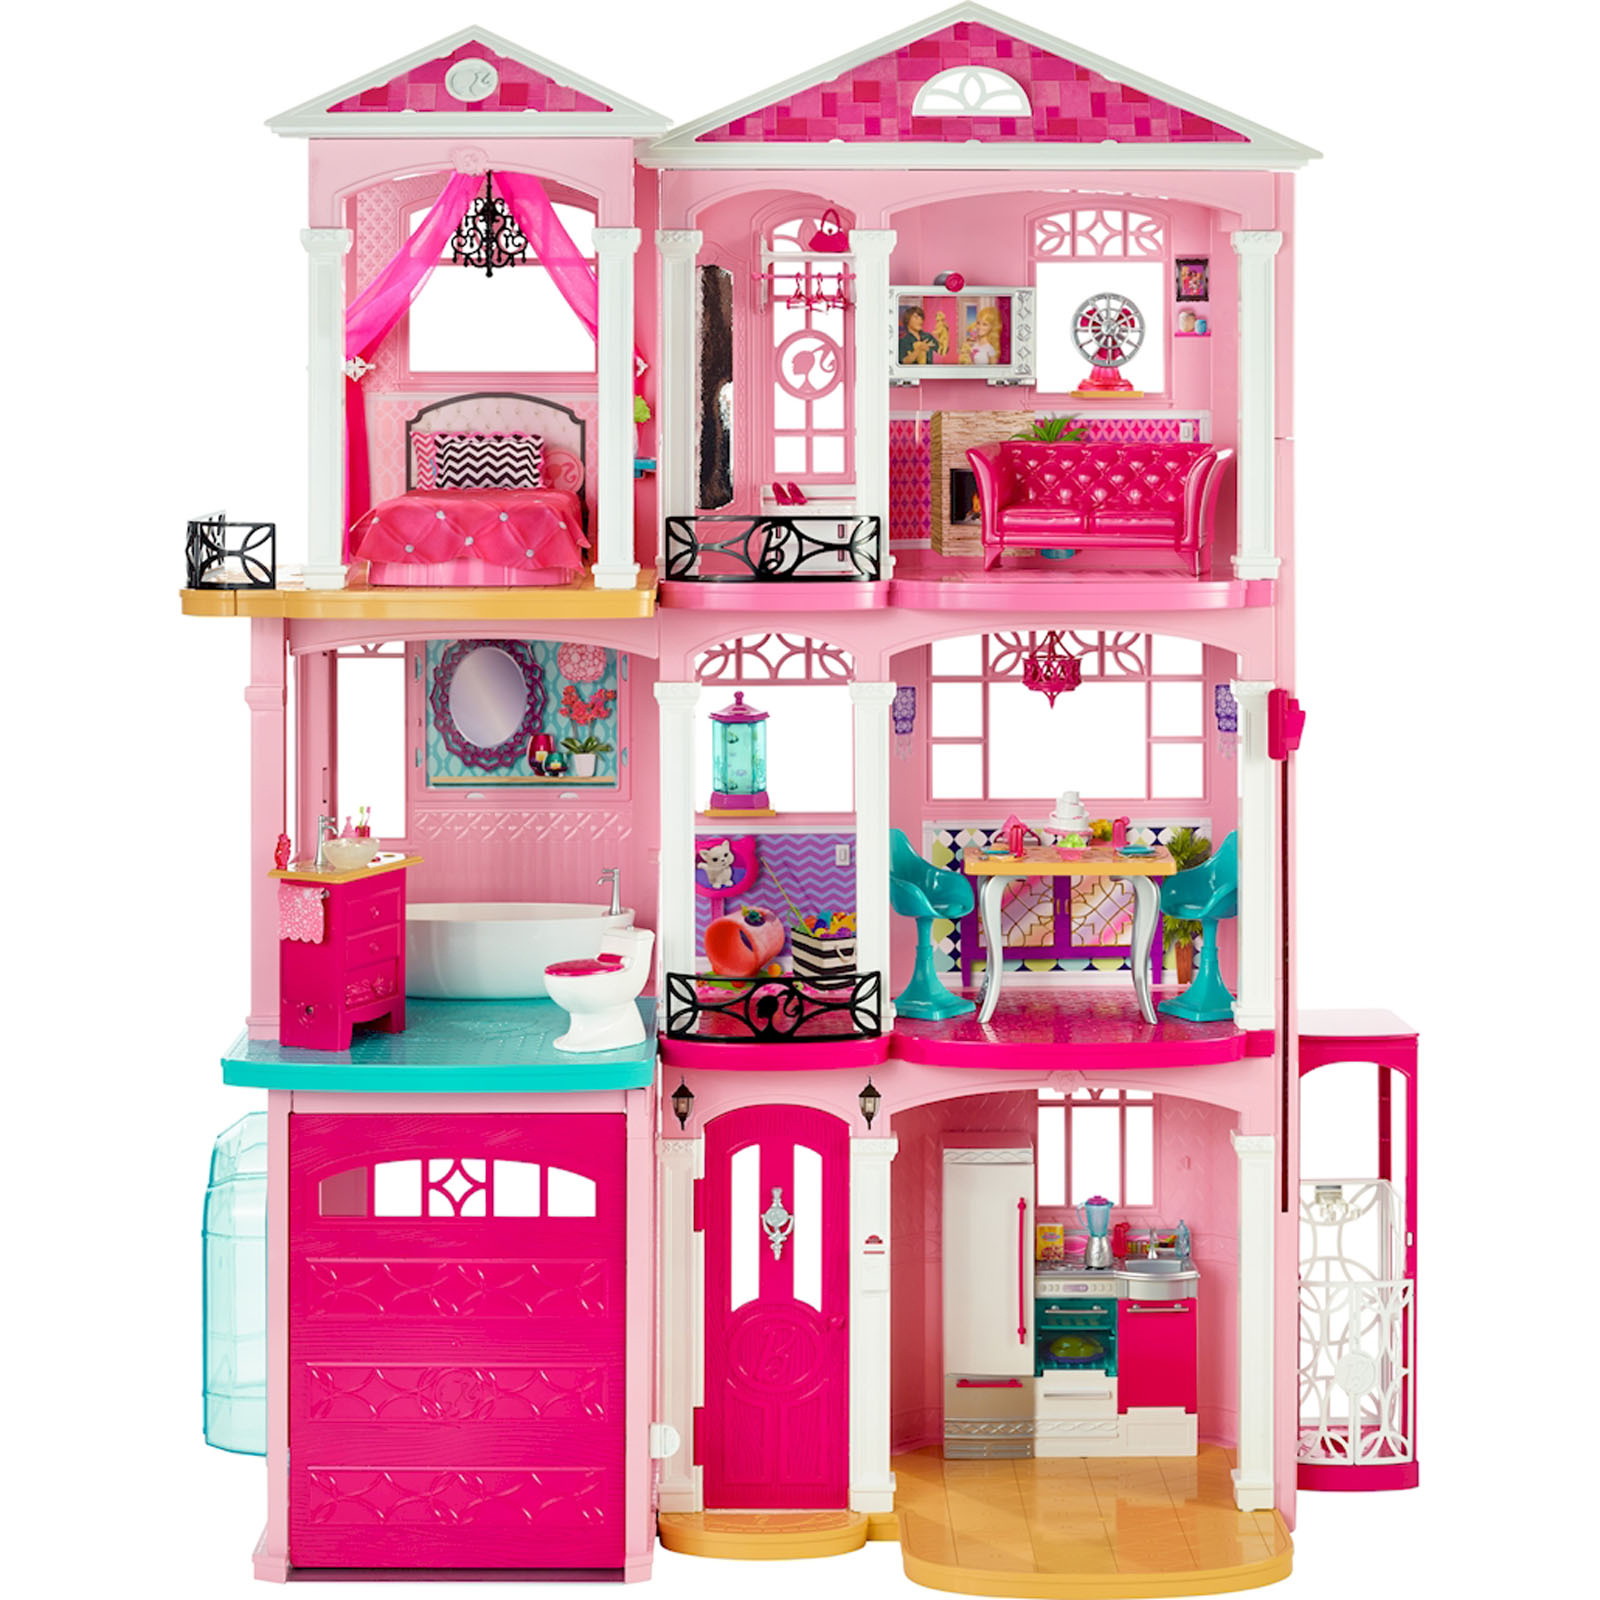 Barbie 3 Story Dreamhouse With Working Elevator